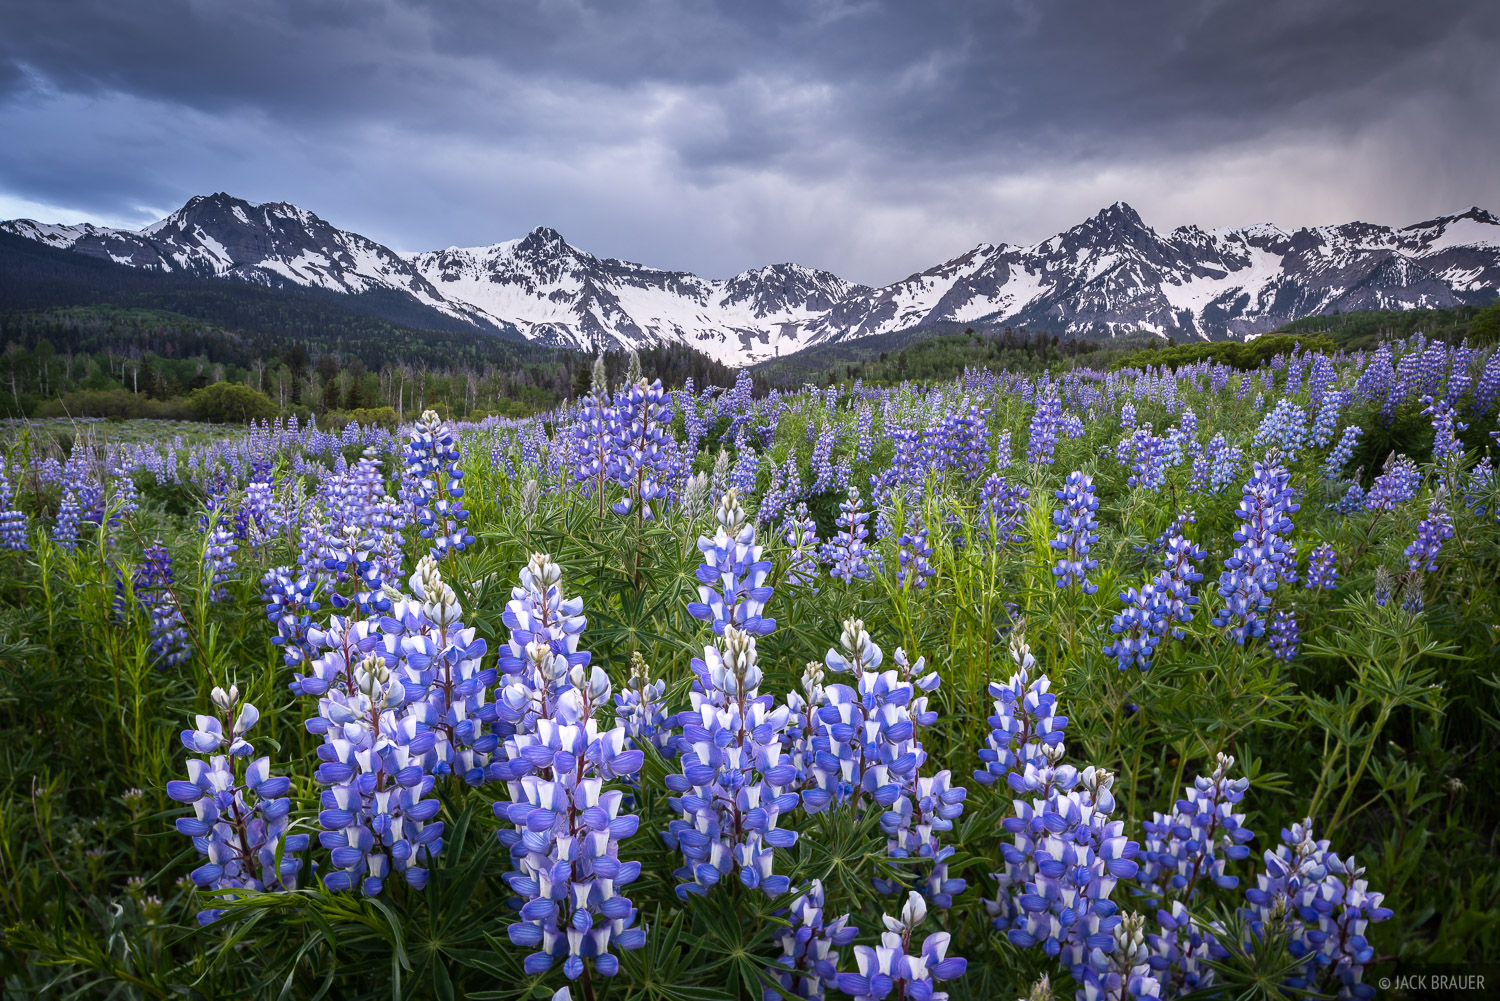 Colorado, Mears Peak, San Juan Mountains, Sneffels Range, wildflowers, lupine, photo